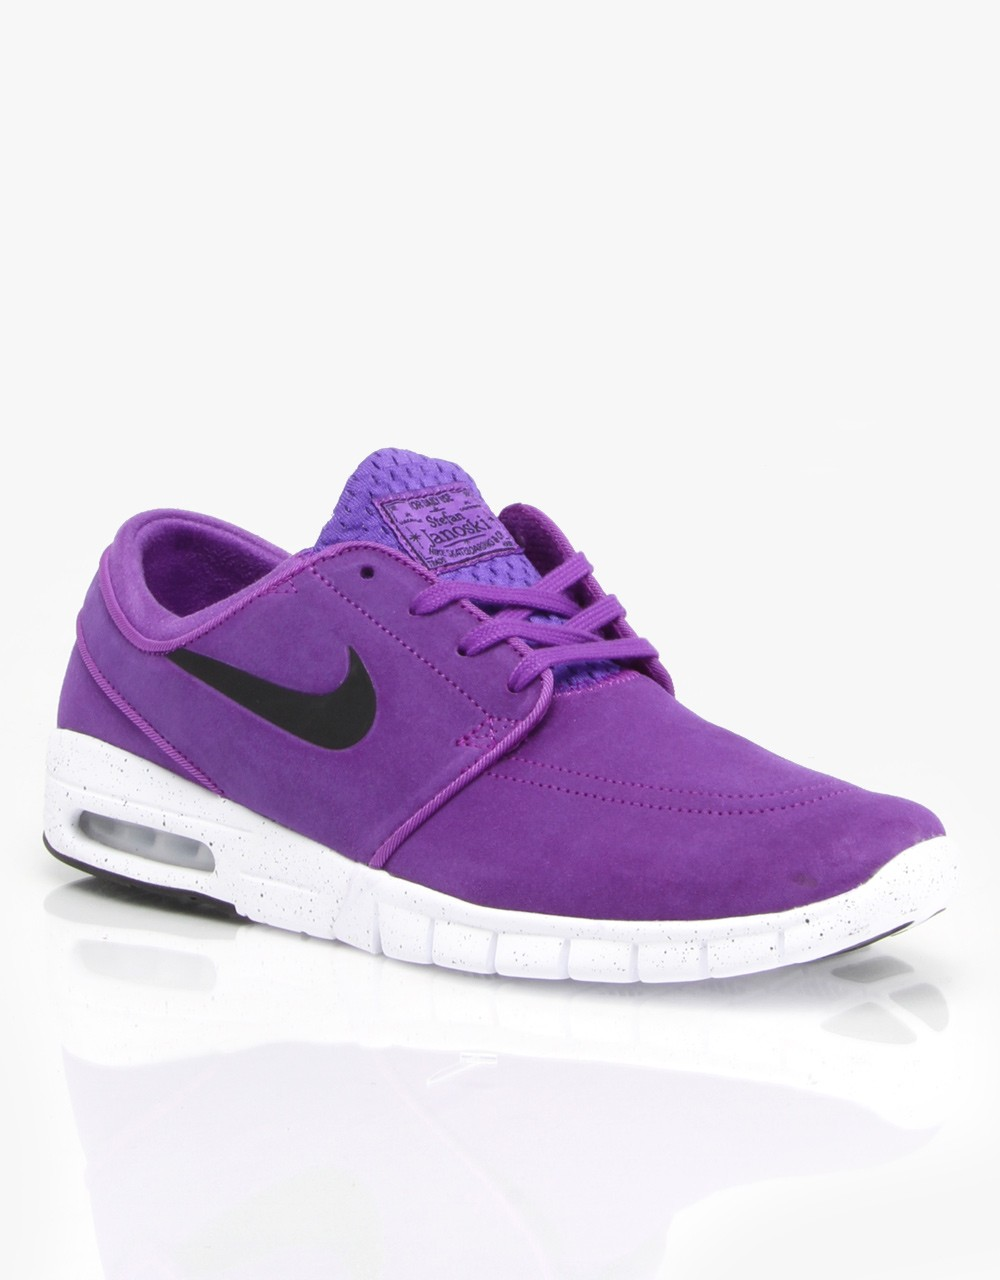 7f47fbd3081c7 Price  63 Nike SB Stefan Janoski Max L Suede Hyper Grape Black White ...